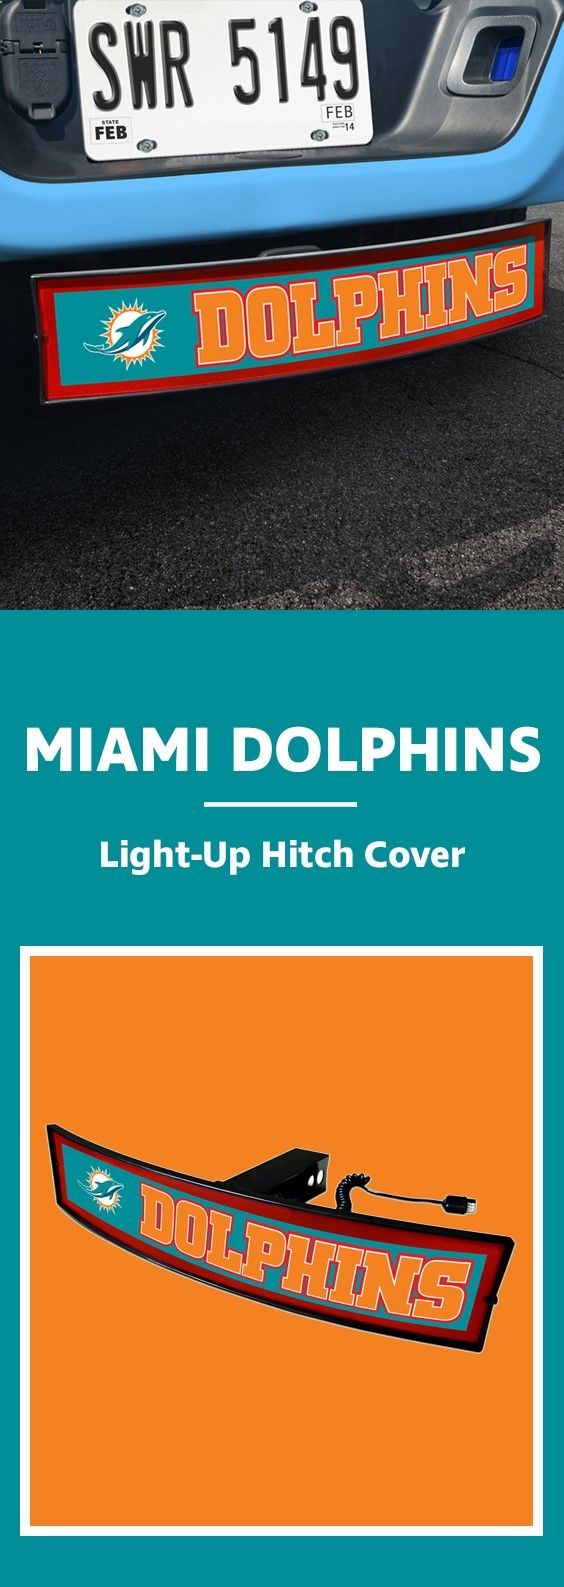 One of our new favorites! Light-up Hitch Cover - check out our site and find your favorite team. nfl, football, trucks, hitch, lets get hitched, lightup, dolphins, miami, miami beach, florida, dolphins football, florida football, cars, carshow, teal, orange, ncaa, orange state, fast, stop, beepbeep, traffic, commute, commuter